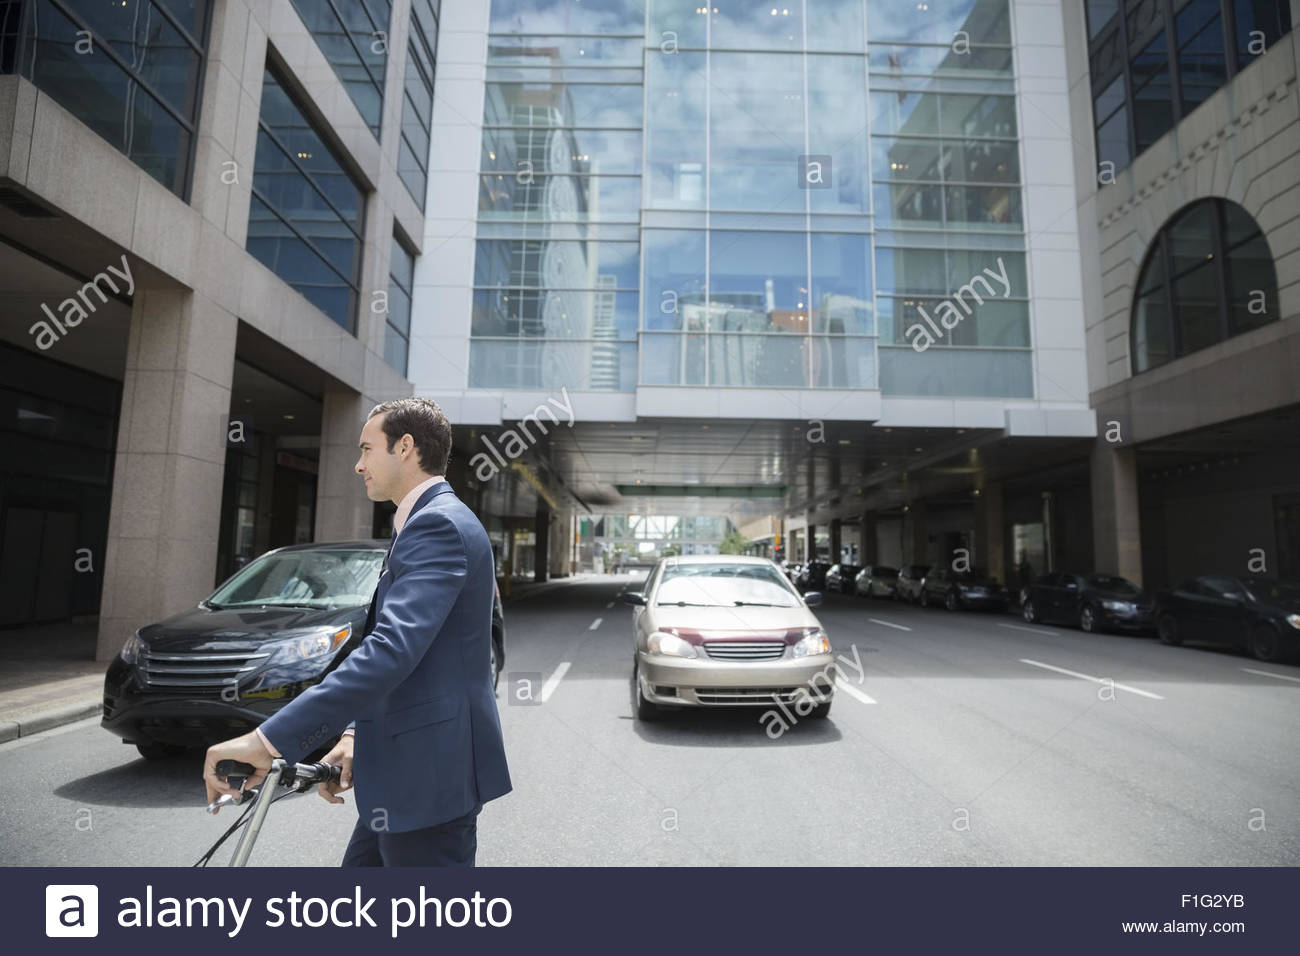 Businessman crossing city street - Stock Image